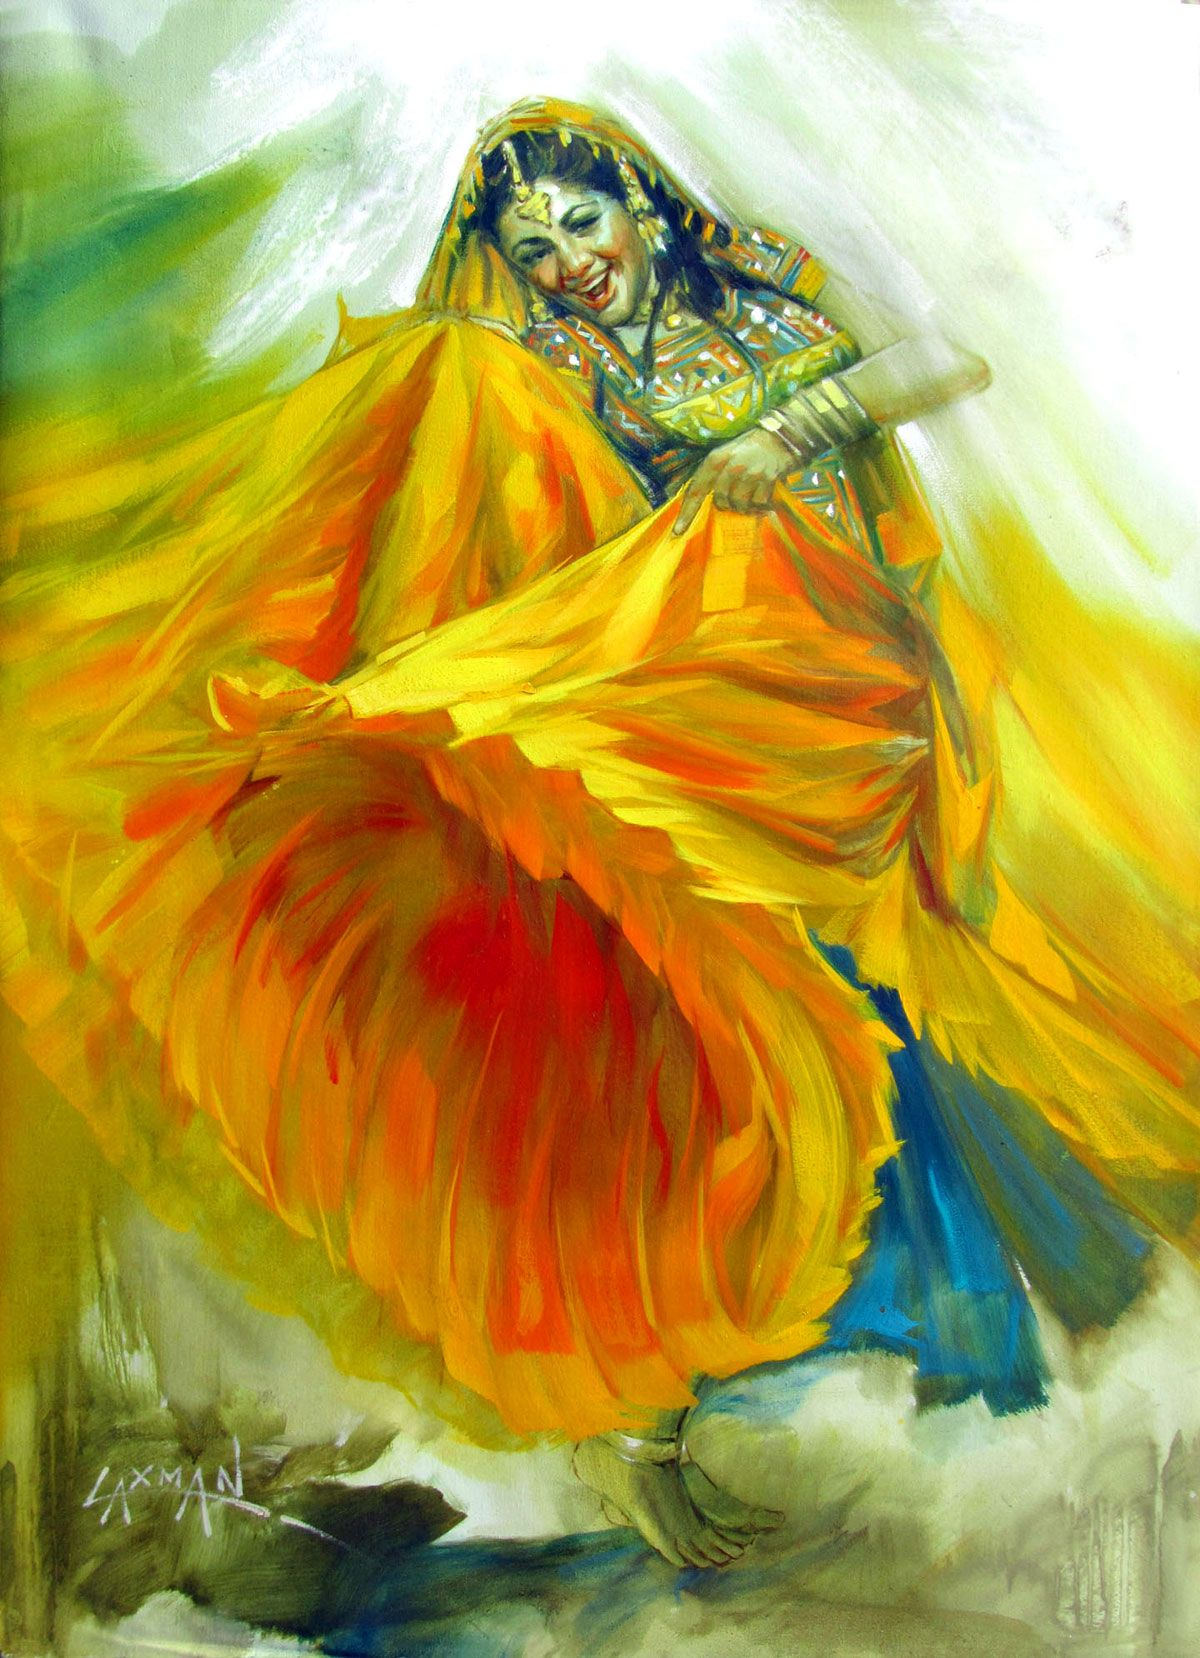 Laxman Kumar - Google Search   Art / Illustrations   Pinterest ... for Abstract Painting Of Indian Dancers  51ane